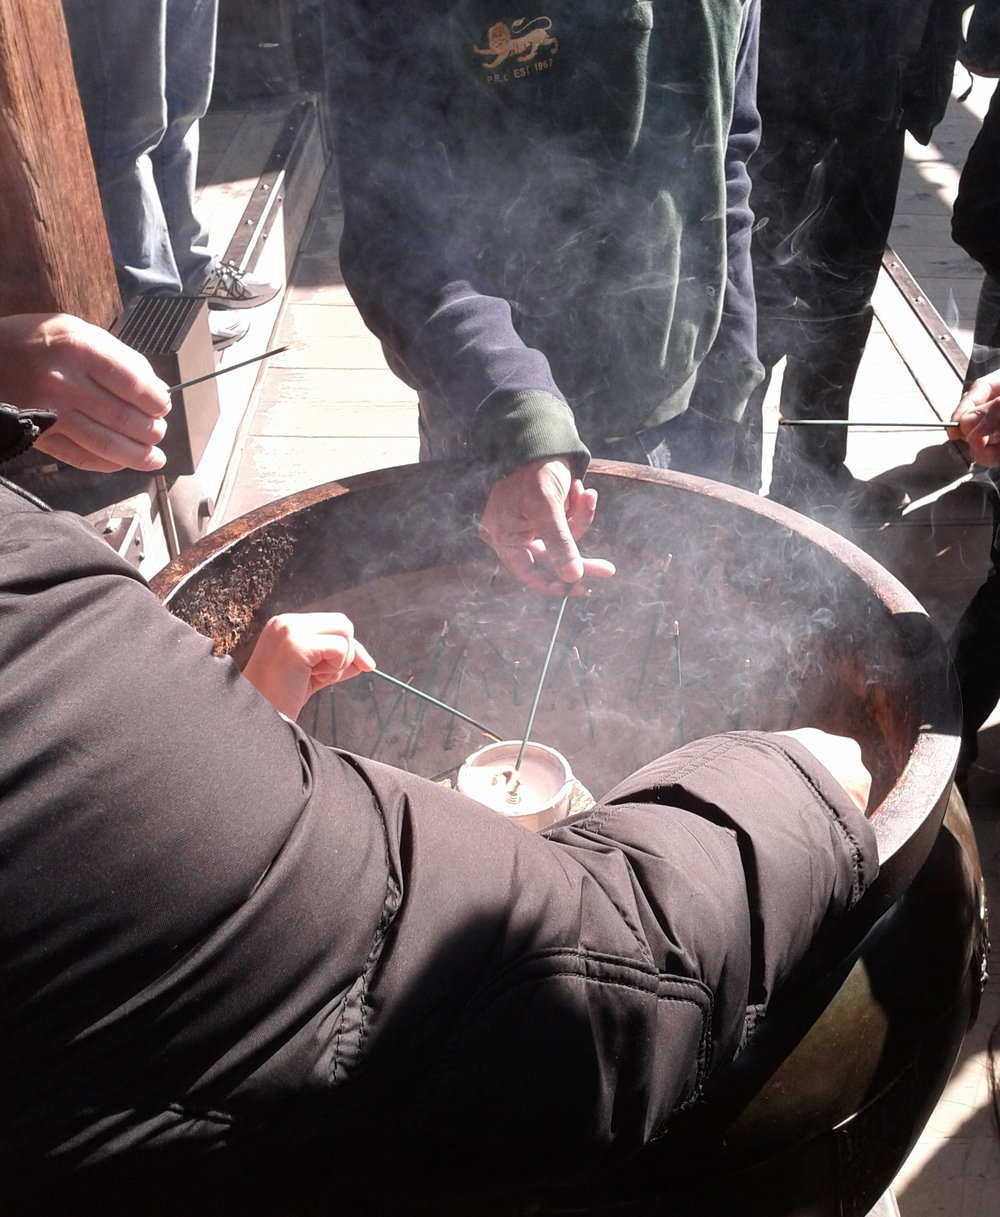 Burning incense at the Kiyomizu temple in Kyoto, Japan